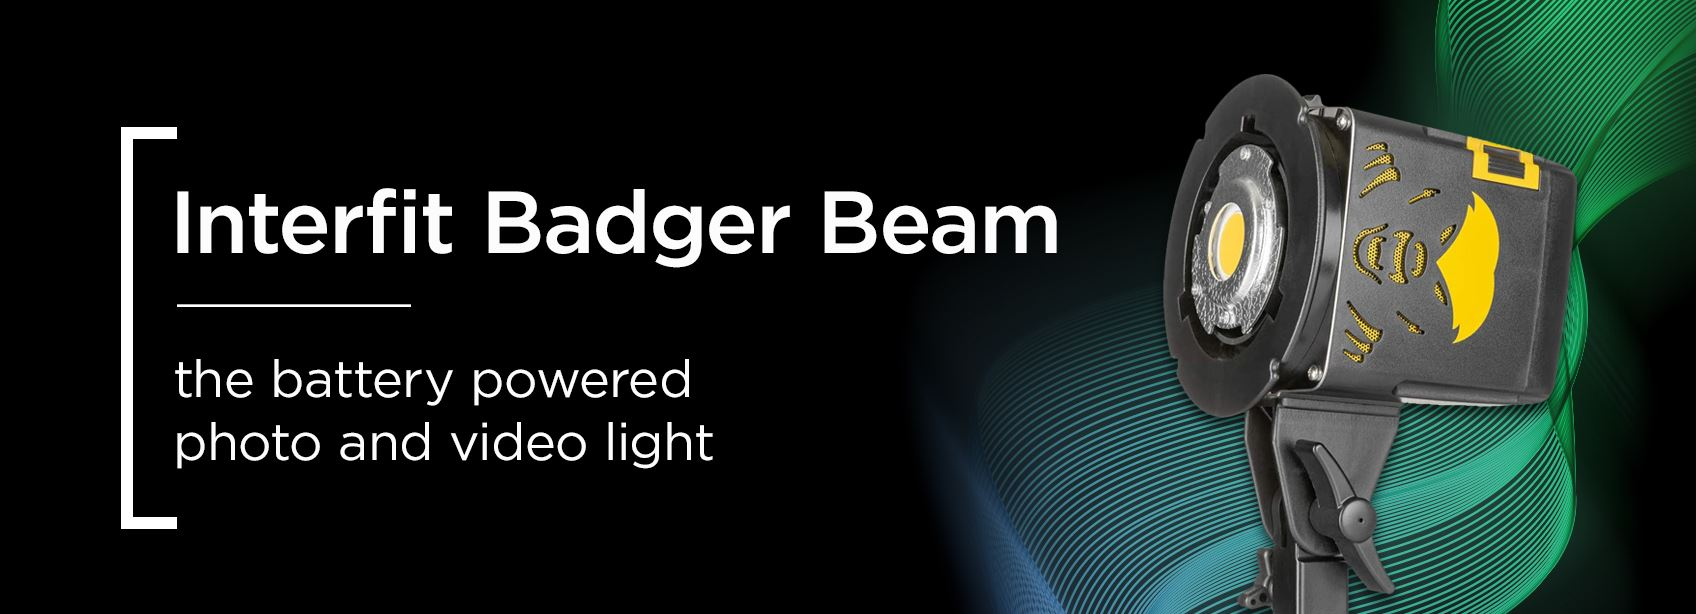 Interfit | Lighting your creativity with the new badger Beam